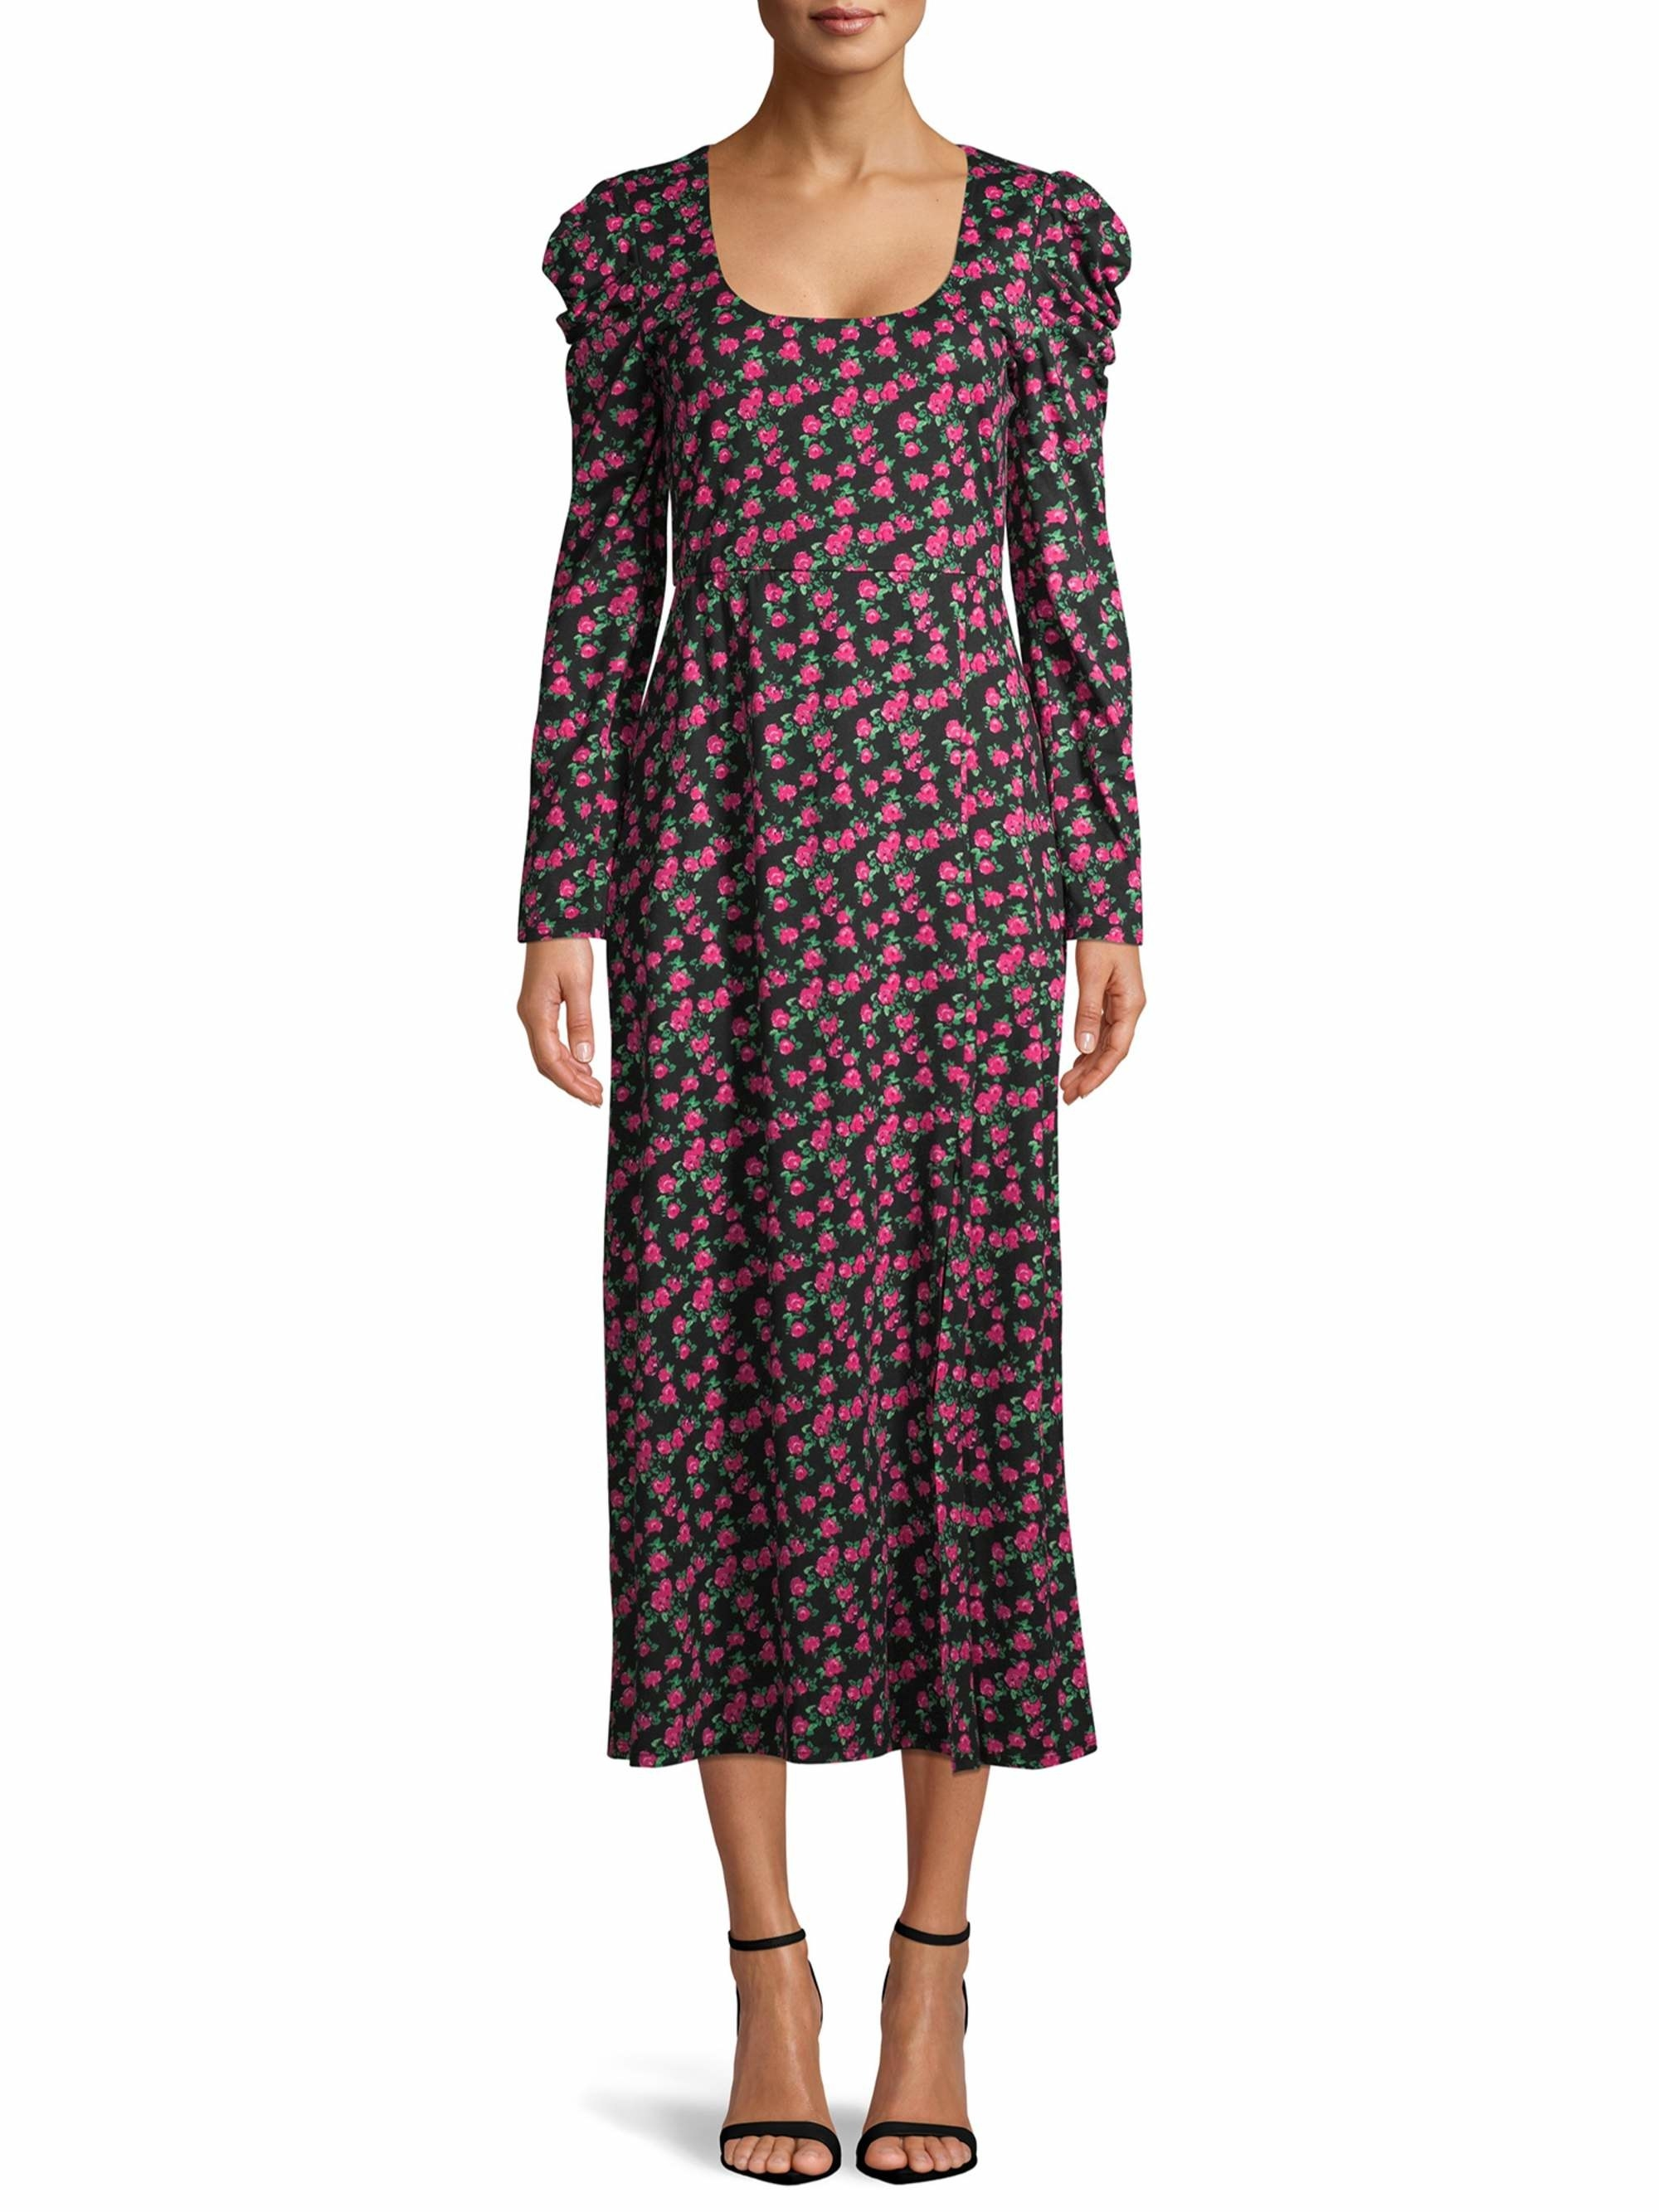 The black, pink, and green floral-printed midi dress